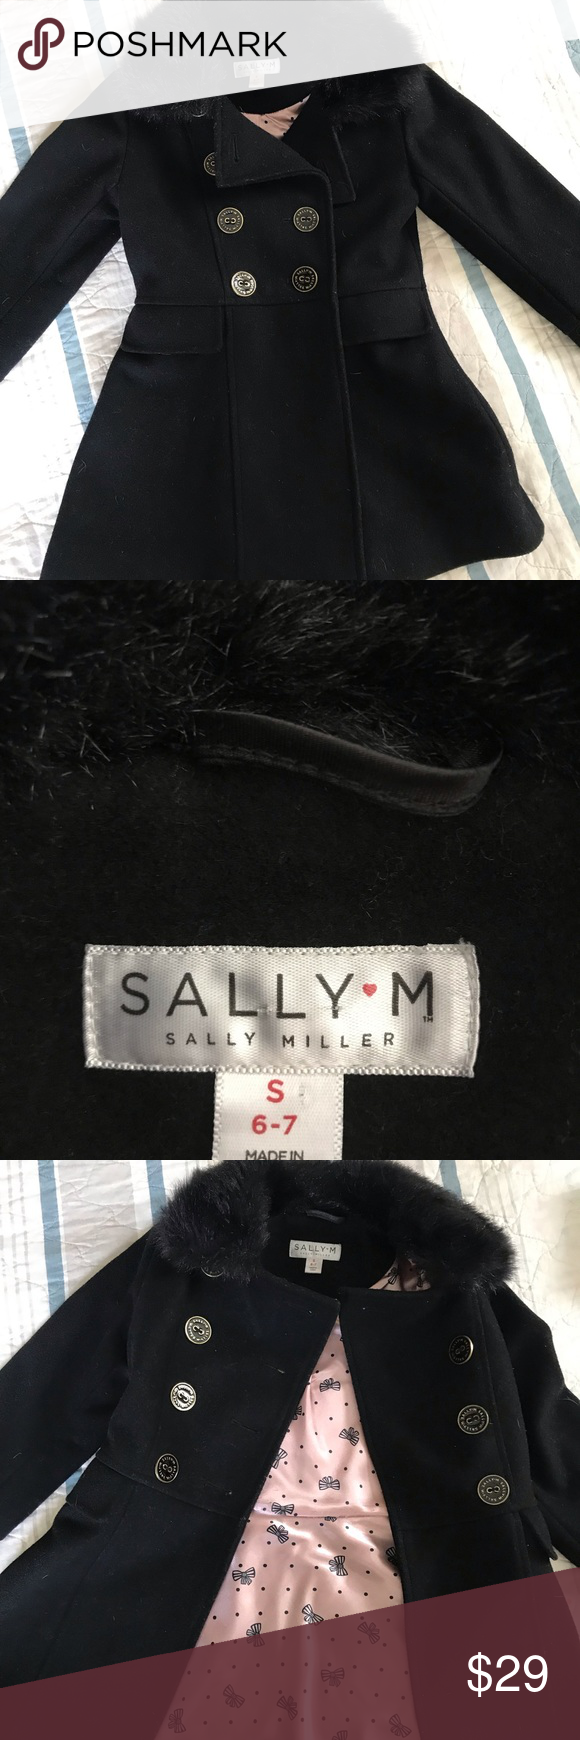 Sally Miller Girls Black Wool Winter Coat 6 Small Adorable black wool coat in great condition. Features a faux fur collar, black and gold buttons, and pink bow lining. Sally Miller Jackets & Coats Pea Coats #sallymiller